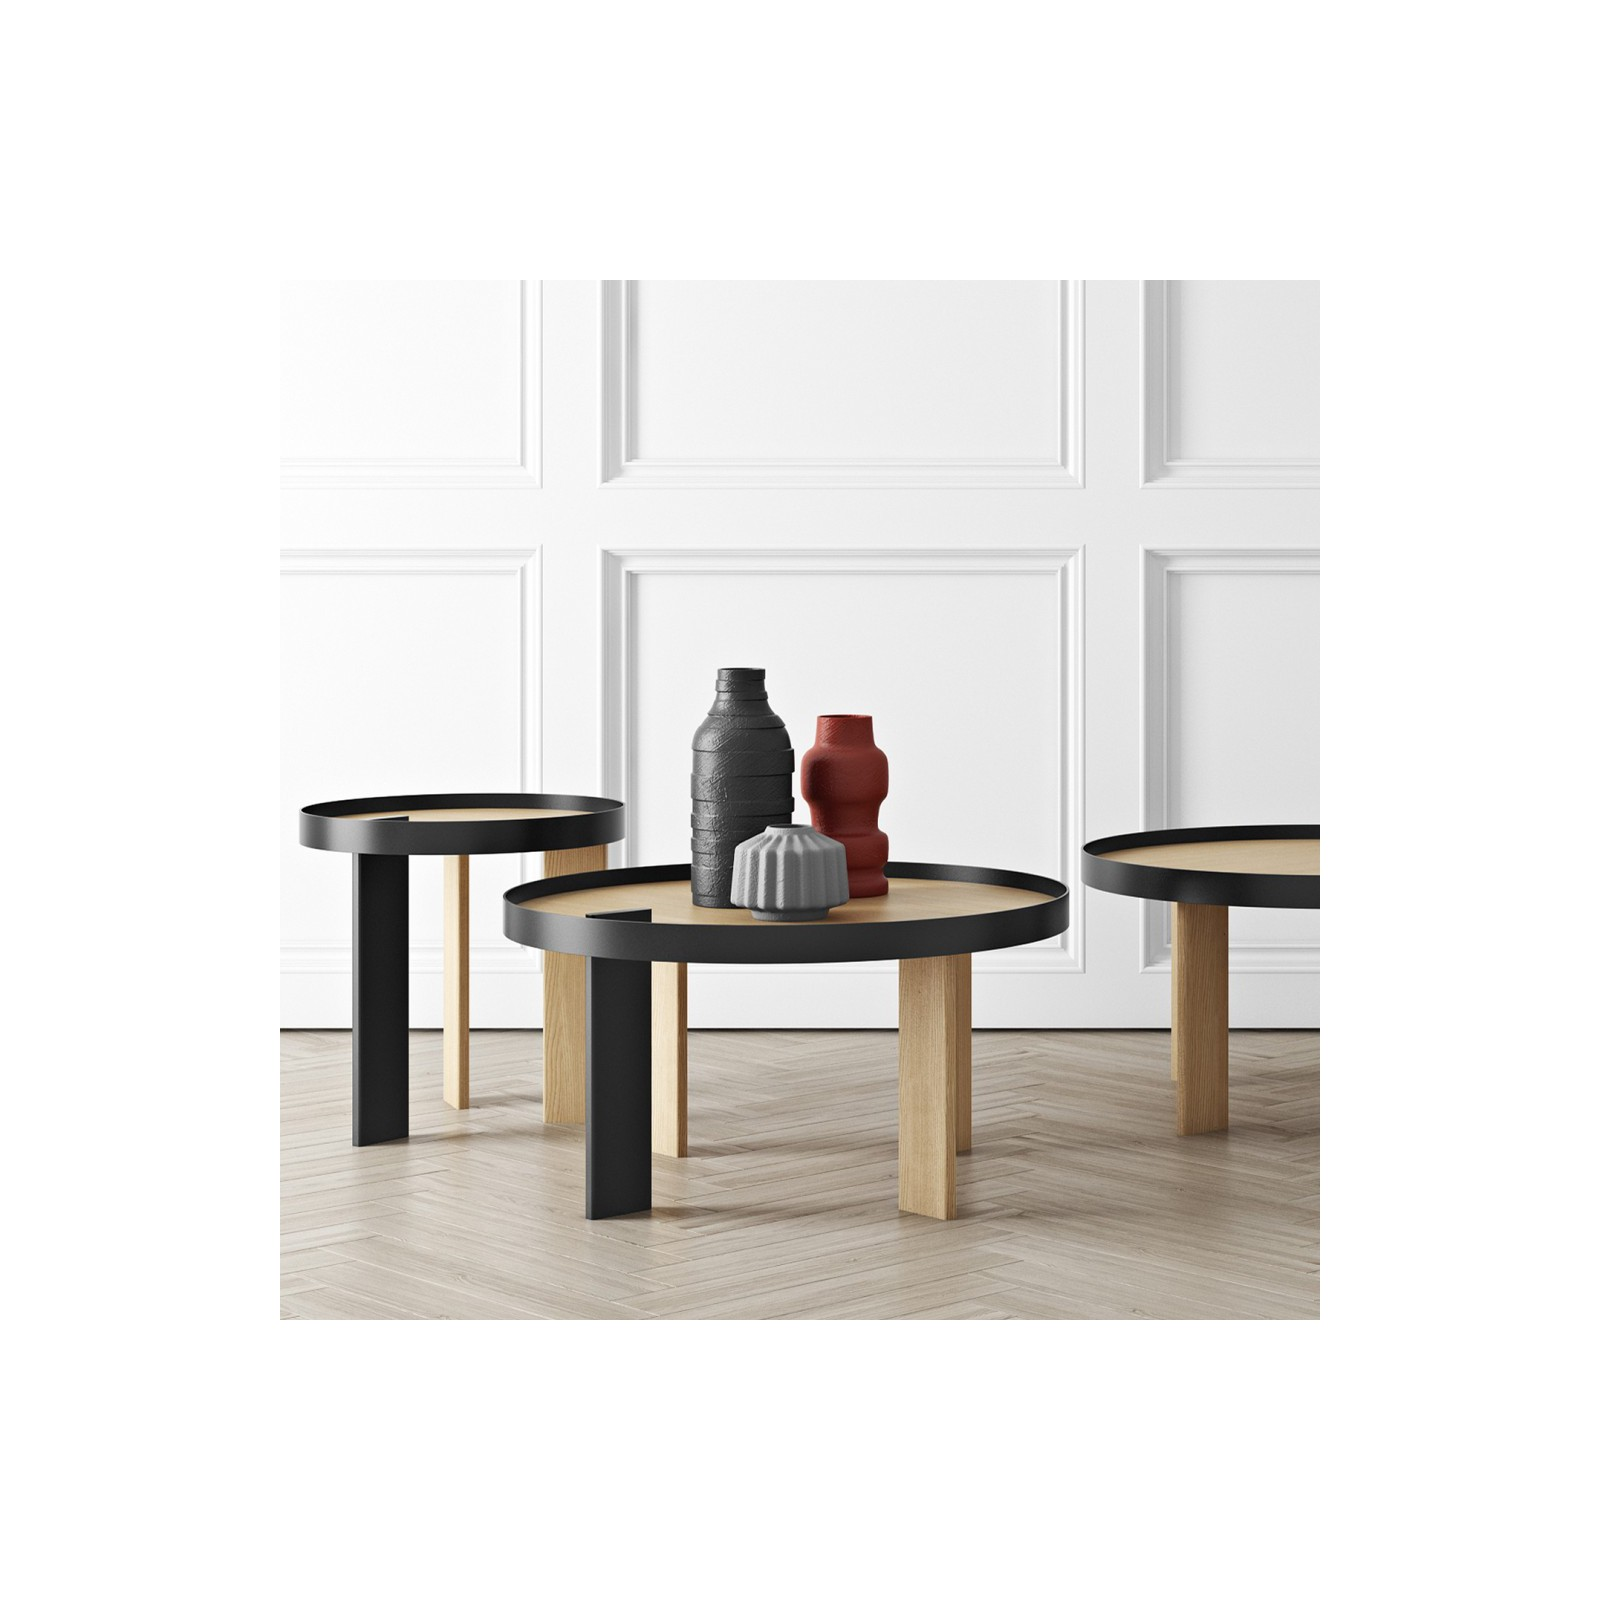 Table d 39 appoint d co arne concept - Table d appoint malm ...